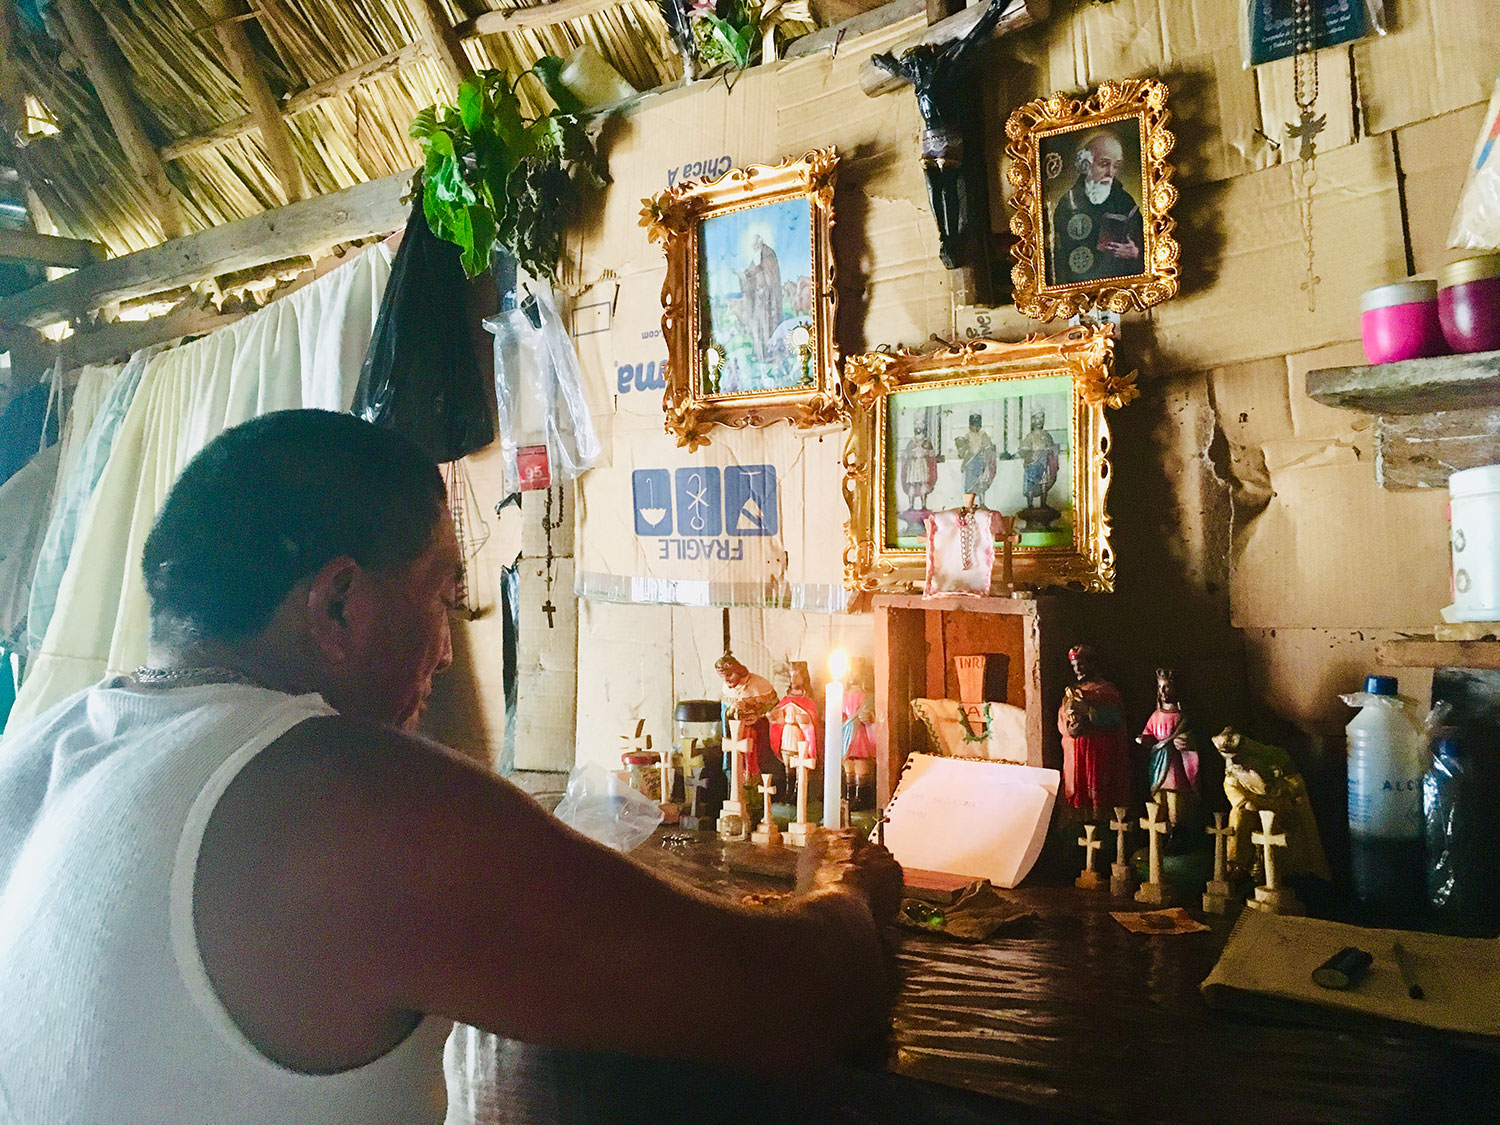 Zacarías the shaman in a ritual. Note the crosses in his shrine.